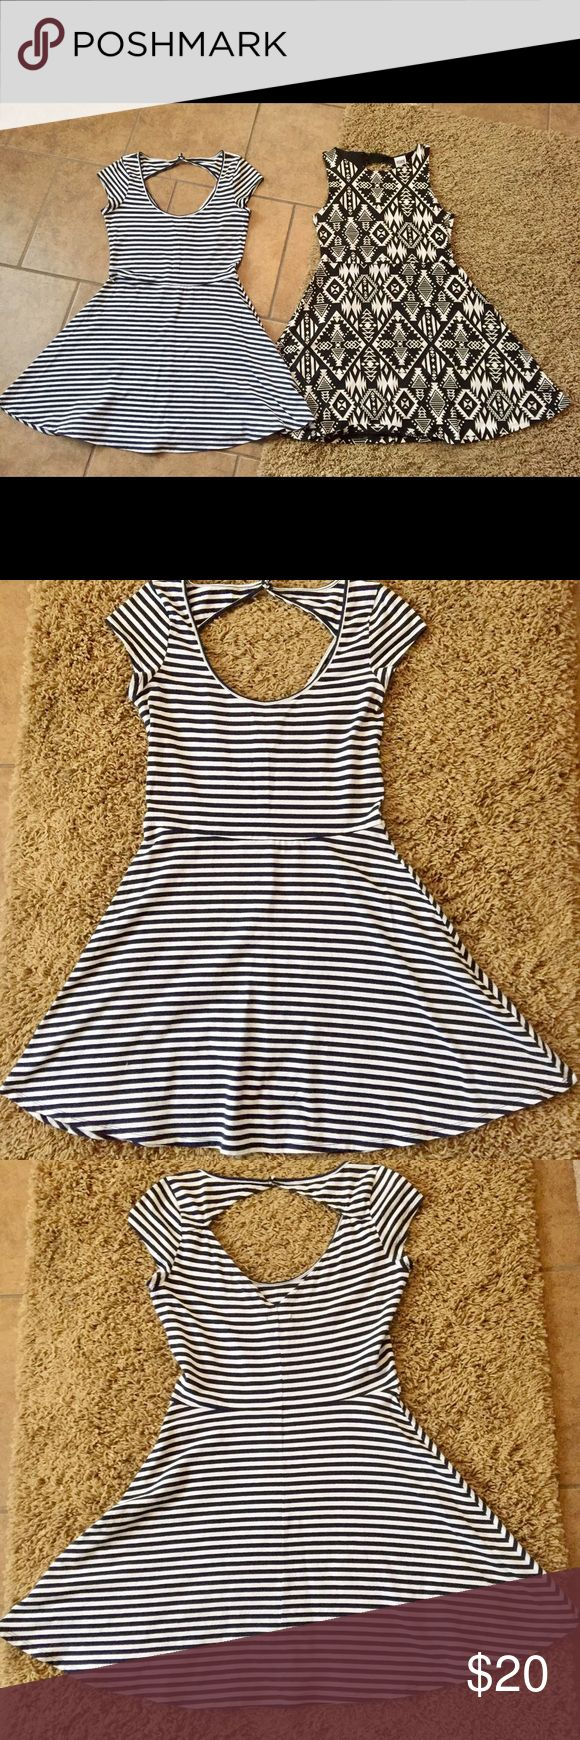 AMERICAN EAGLE/ VICTORIA SECRET DRESSES AMERICAN EAGLE DRESS IS SIZE MED WHITE AND NAVY BLUE STRIPED - VICTORIA SECRET DRESS IS BLACK AND WHITE AND IS ALSO A MED BOTH WE'RE WORN ONCE Victoria's Secret Dresses Midi